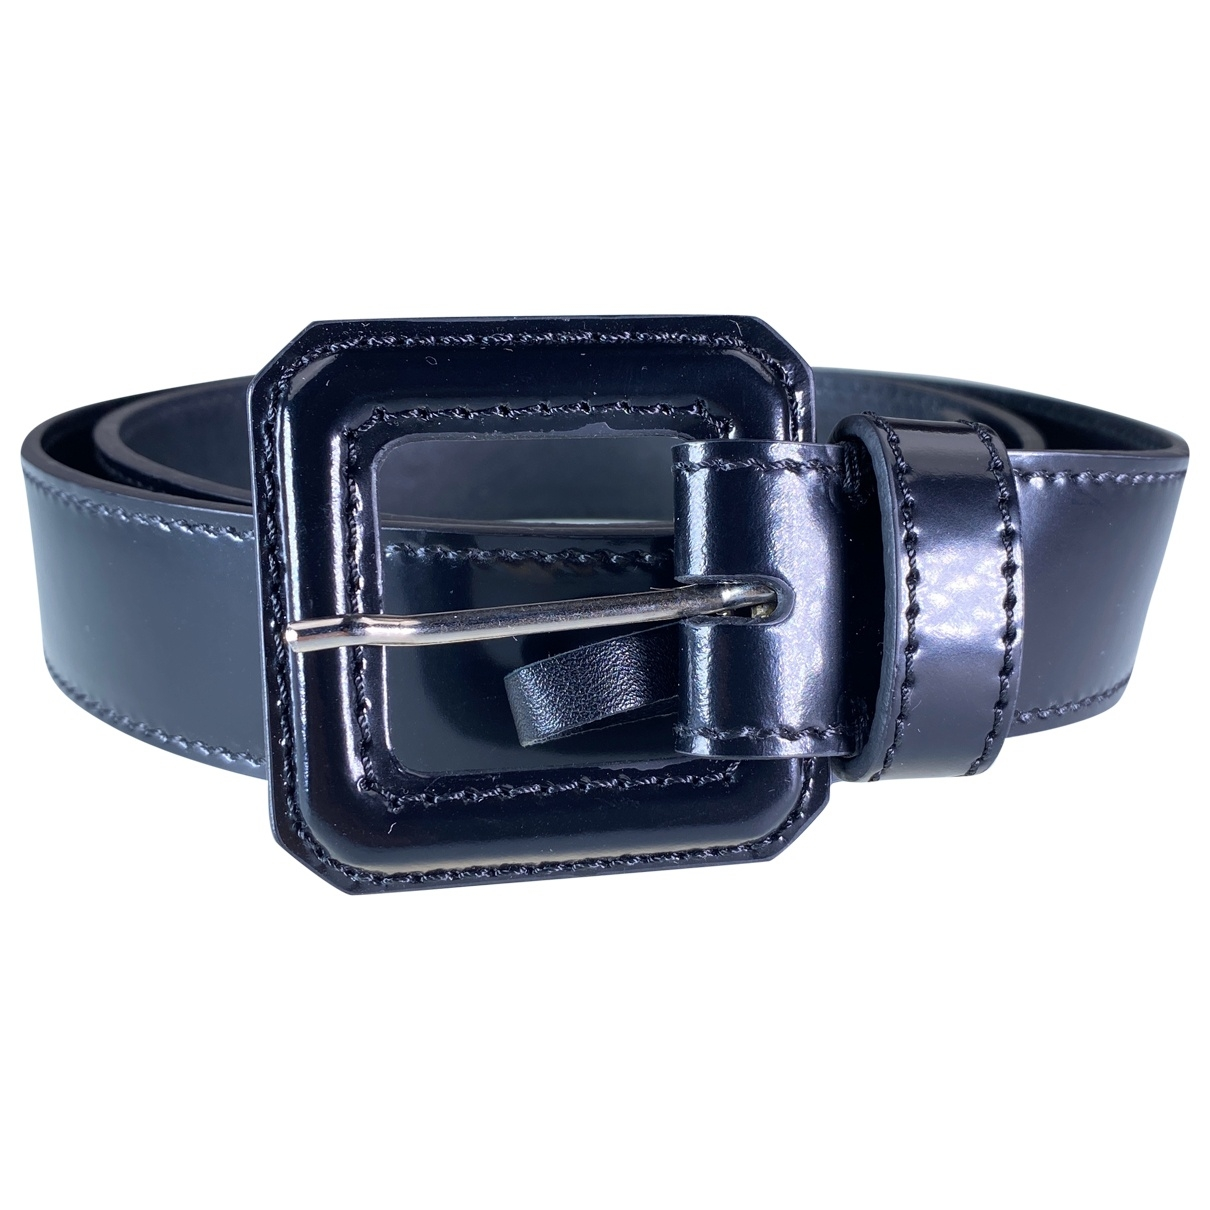 Dior \N Black Patent leather belt for Women 85 cm